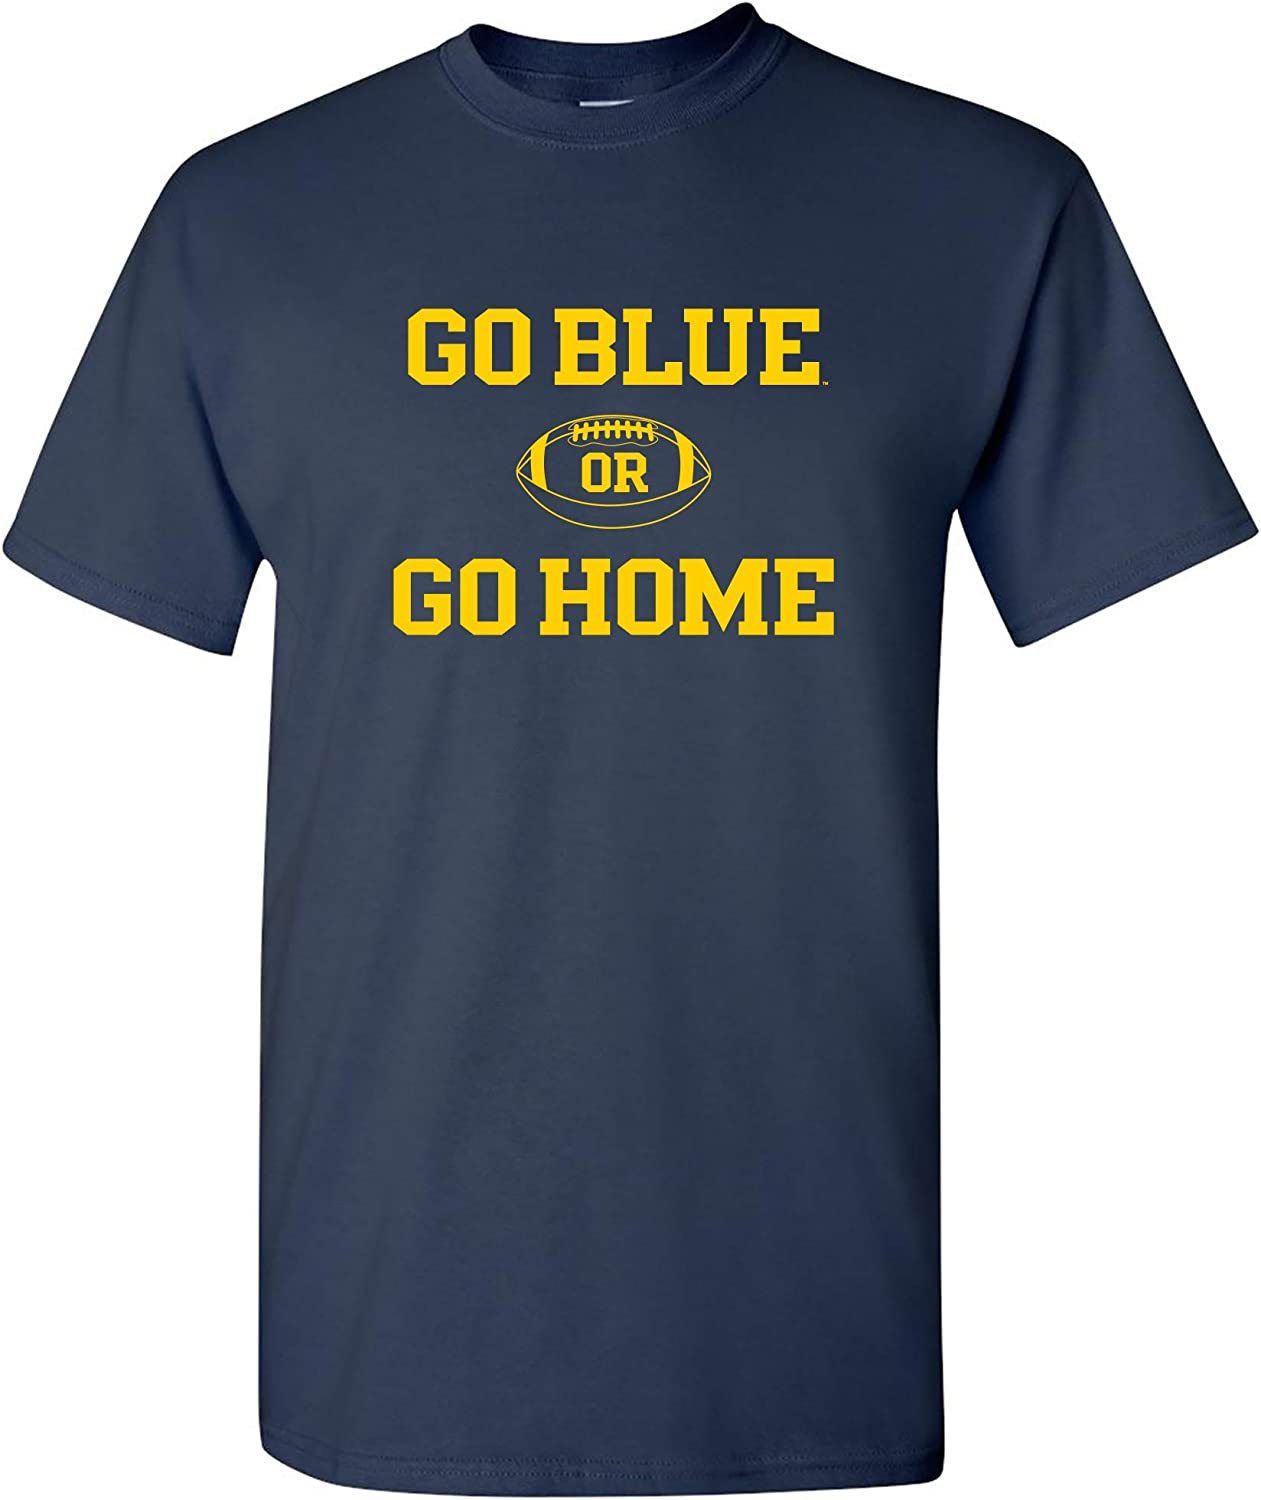 University of Michigan Wolverines Go Blue or Go Home Football T-Shirt